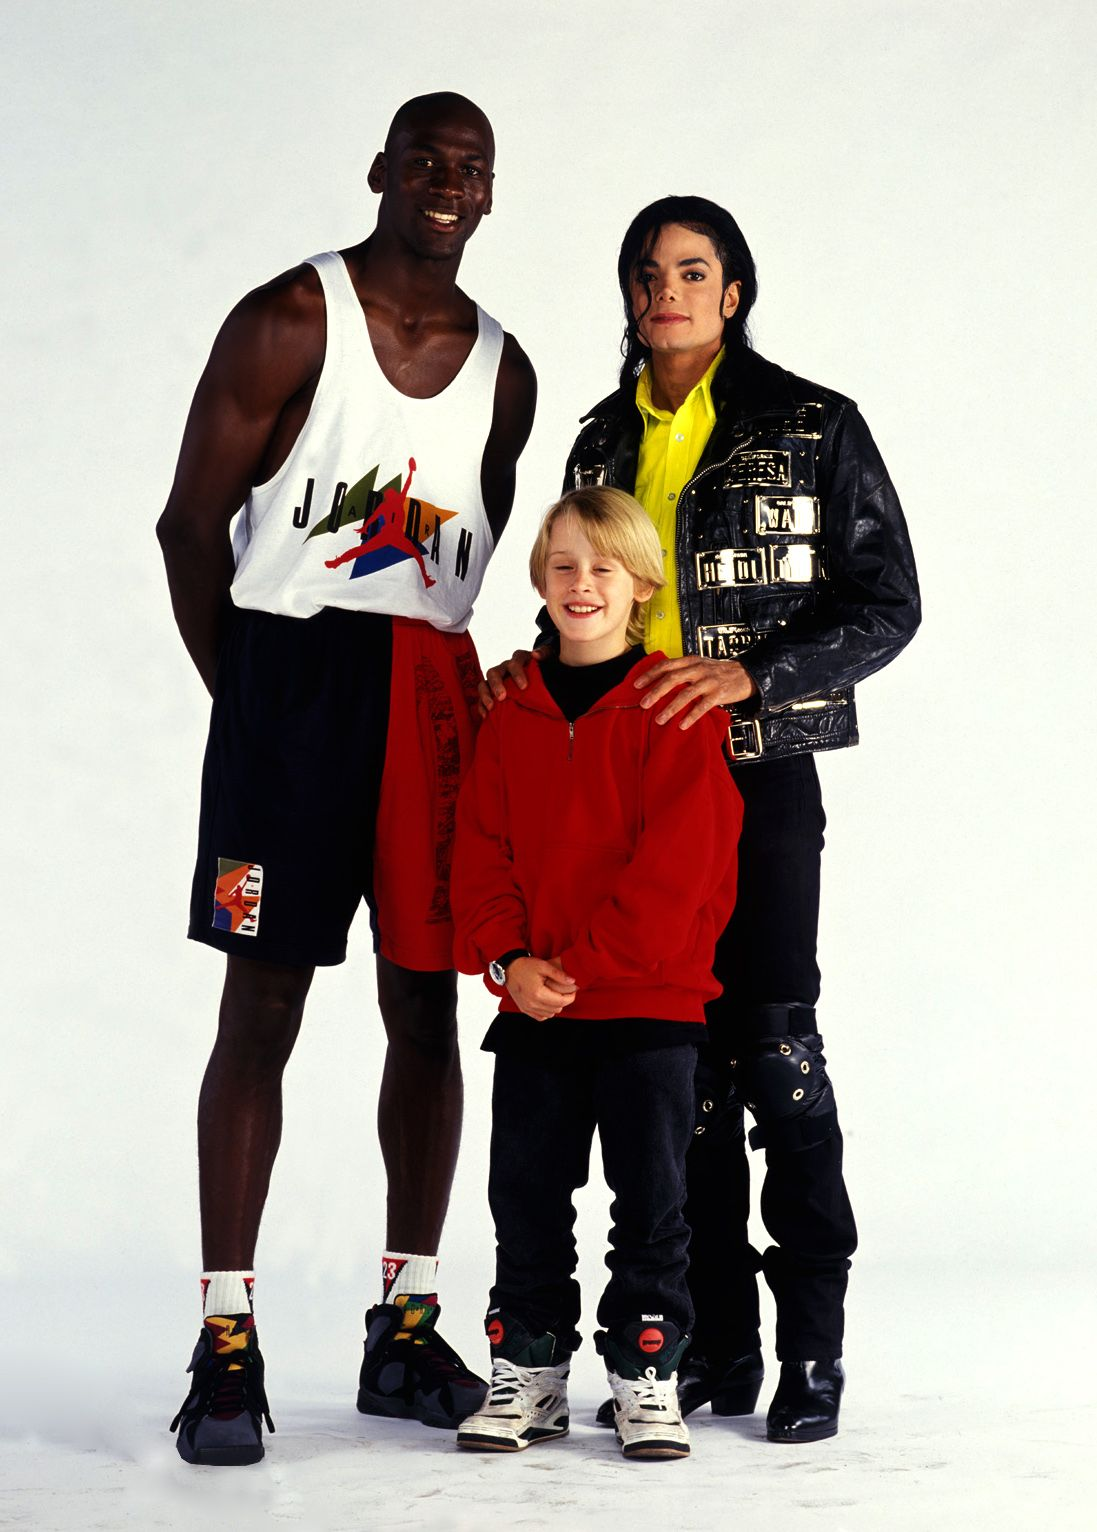 M - Michael Jordan, Michael Jackson and Macaulay Culkin